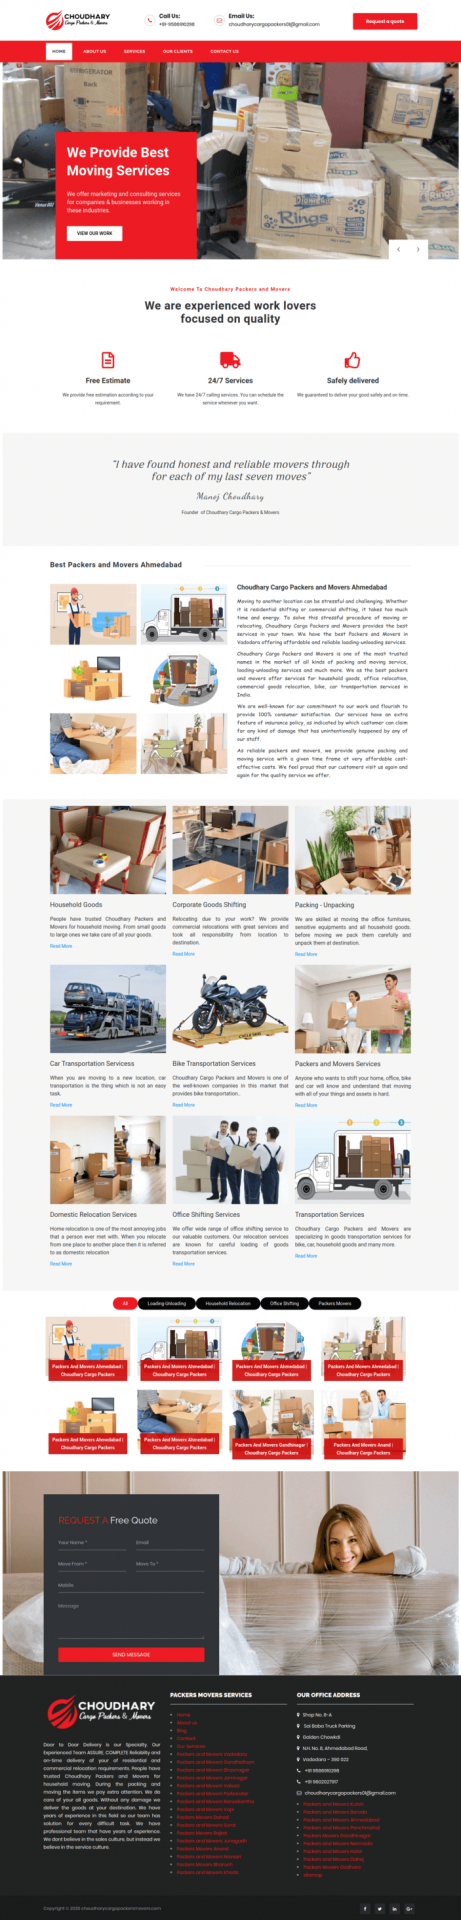 Choudhary Cargo Packers Movers